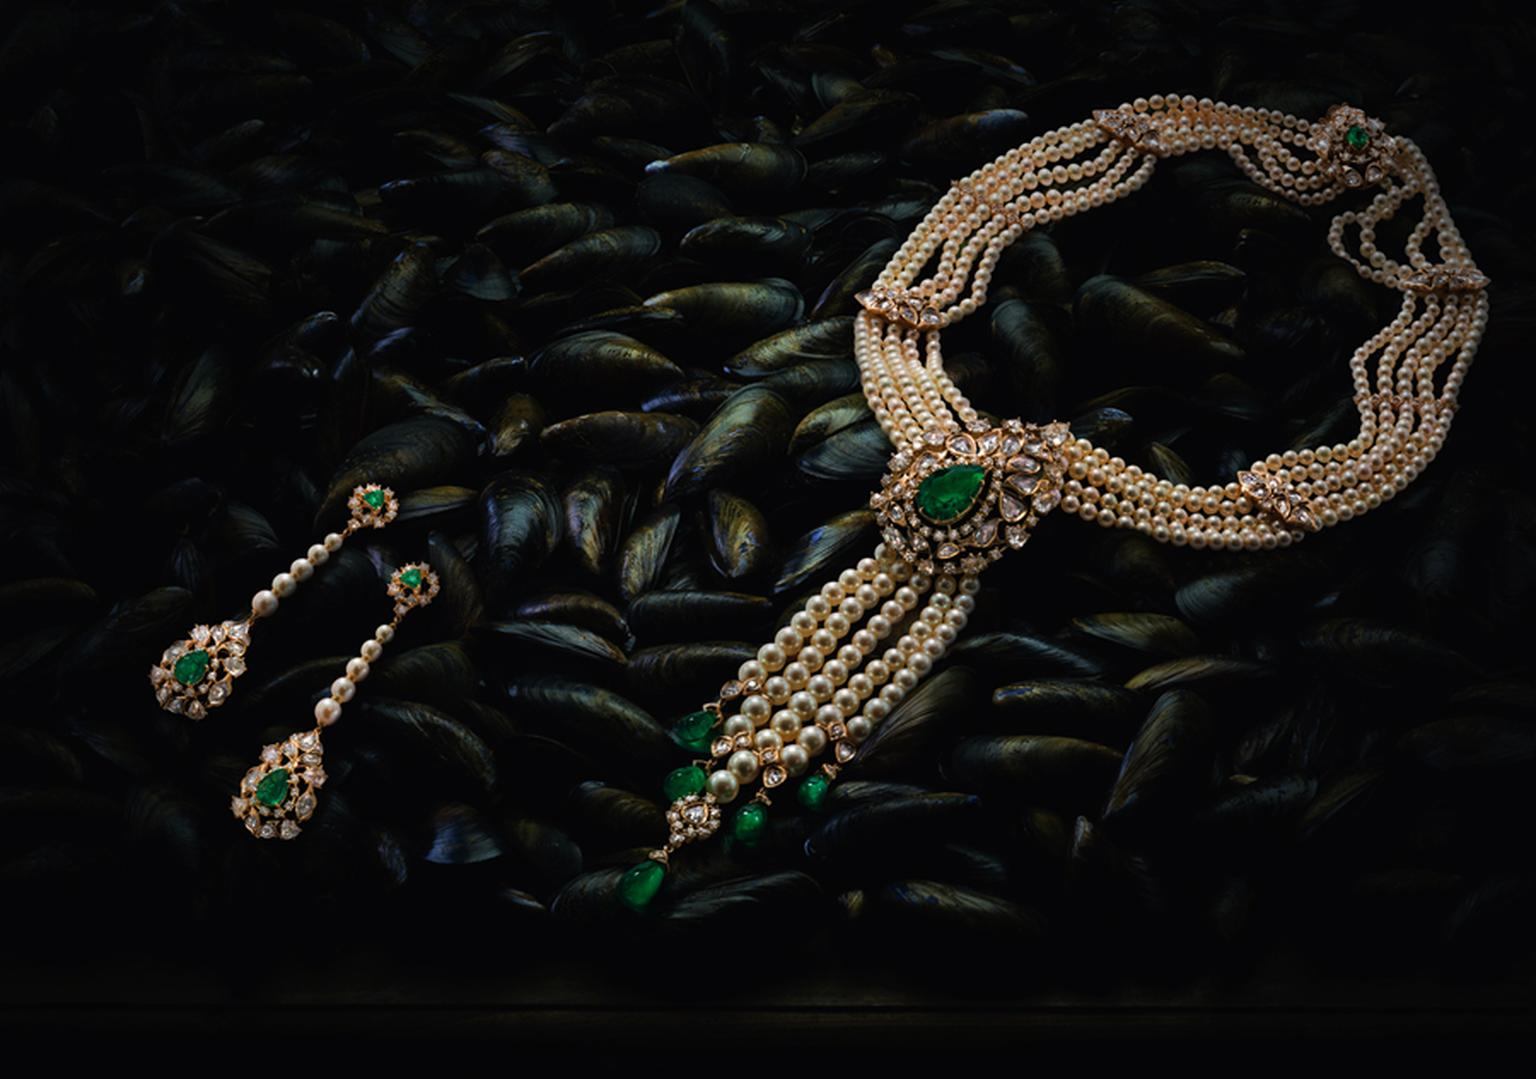 Ganjam-Earrings-and-Necklace--Nizam-Collection-Ganjam.jpg